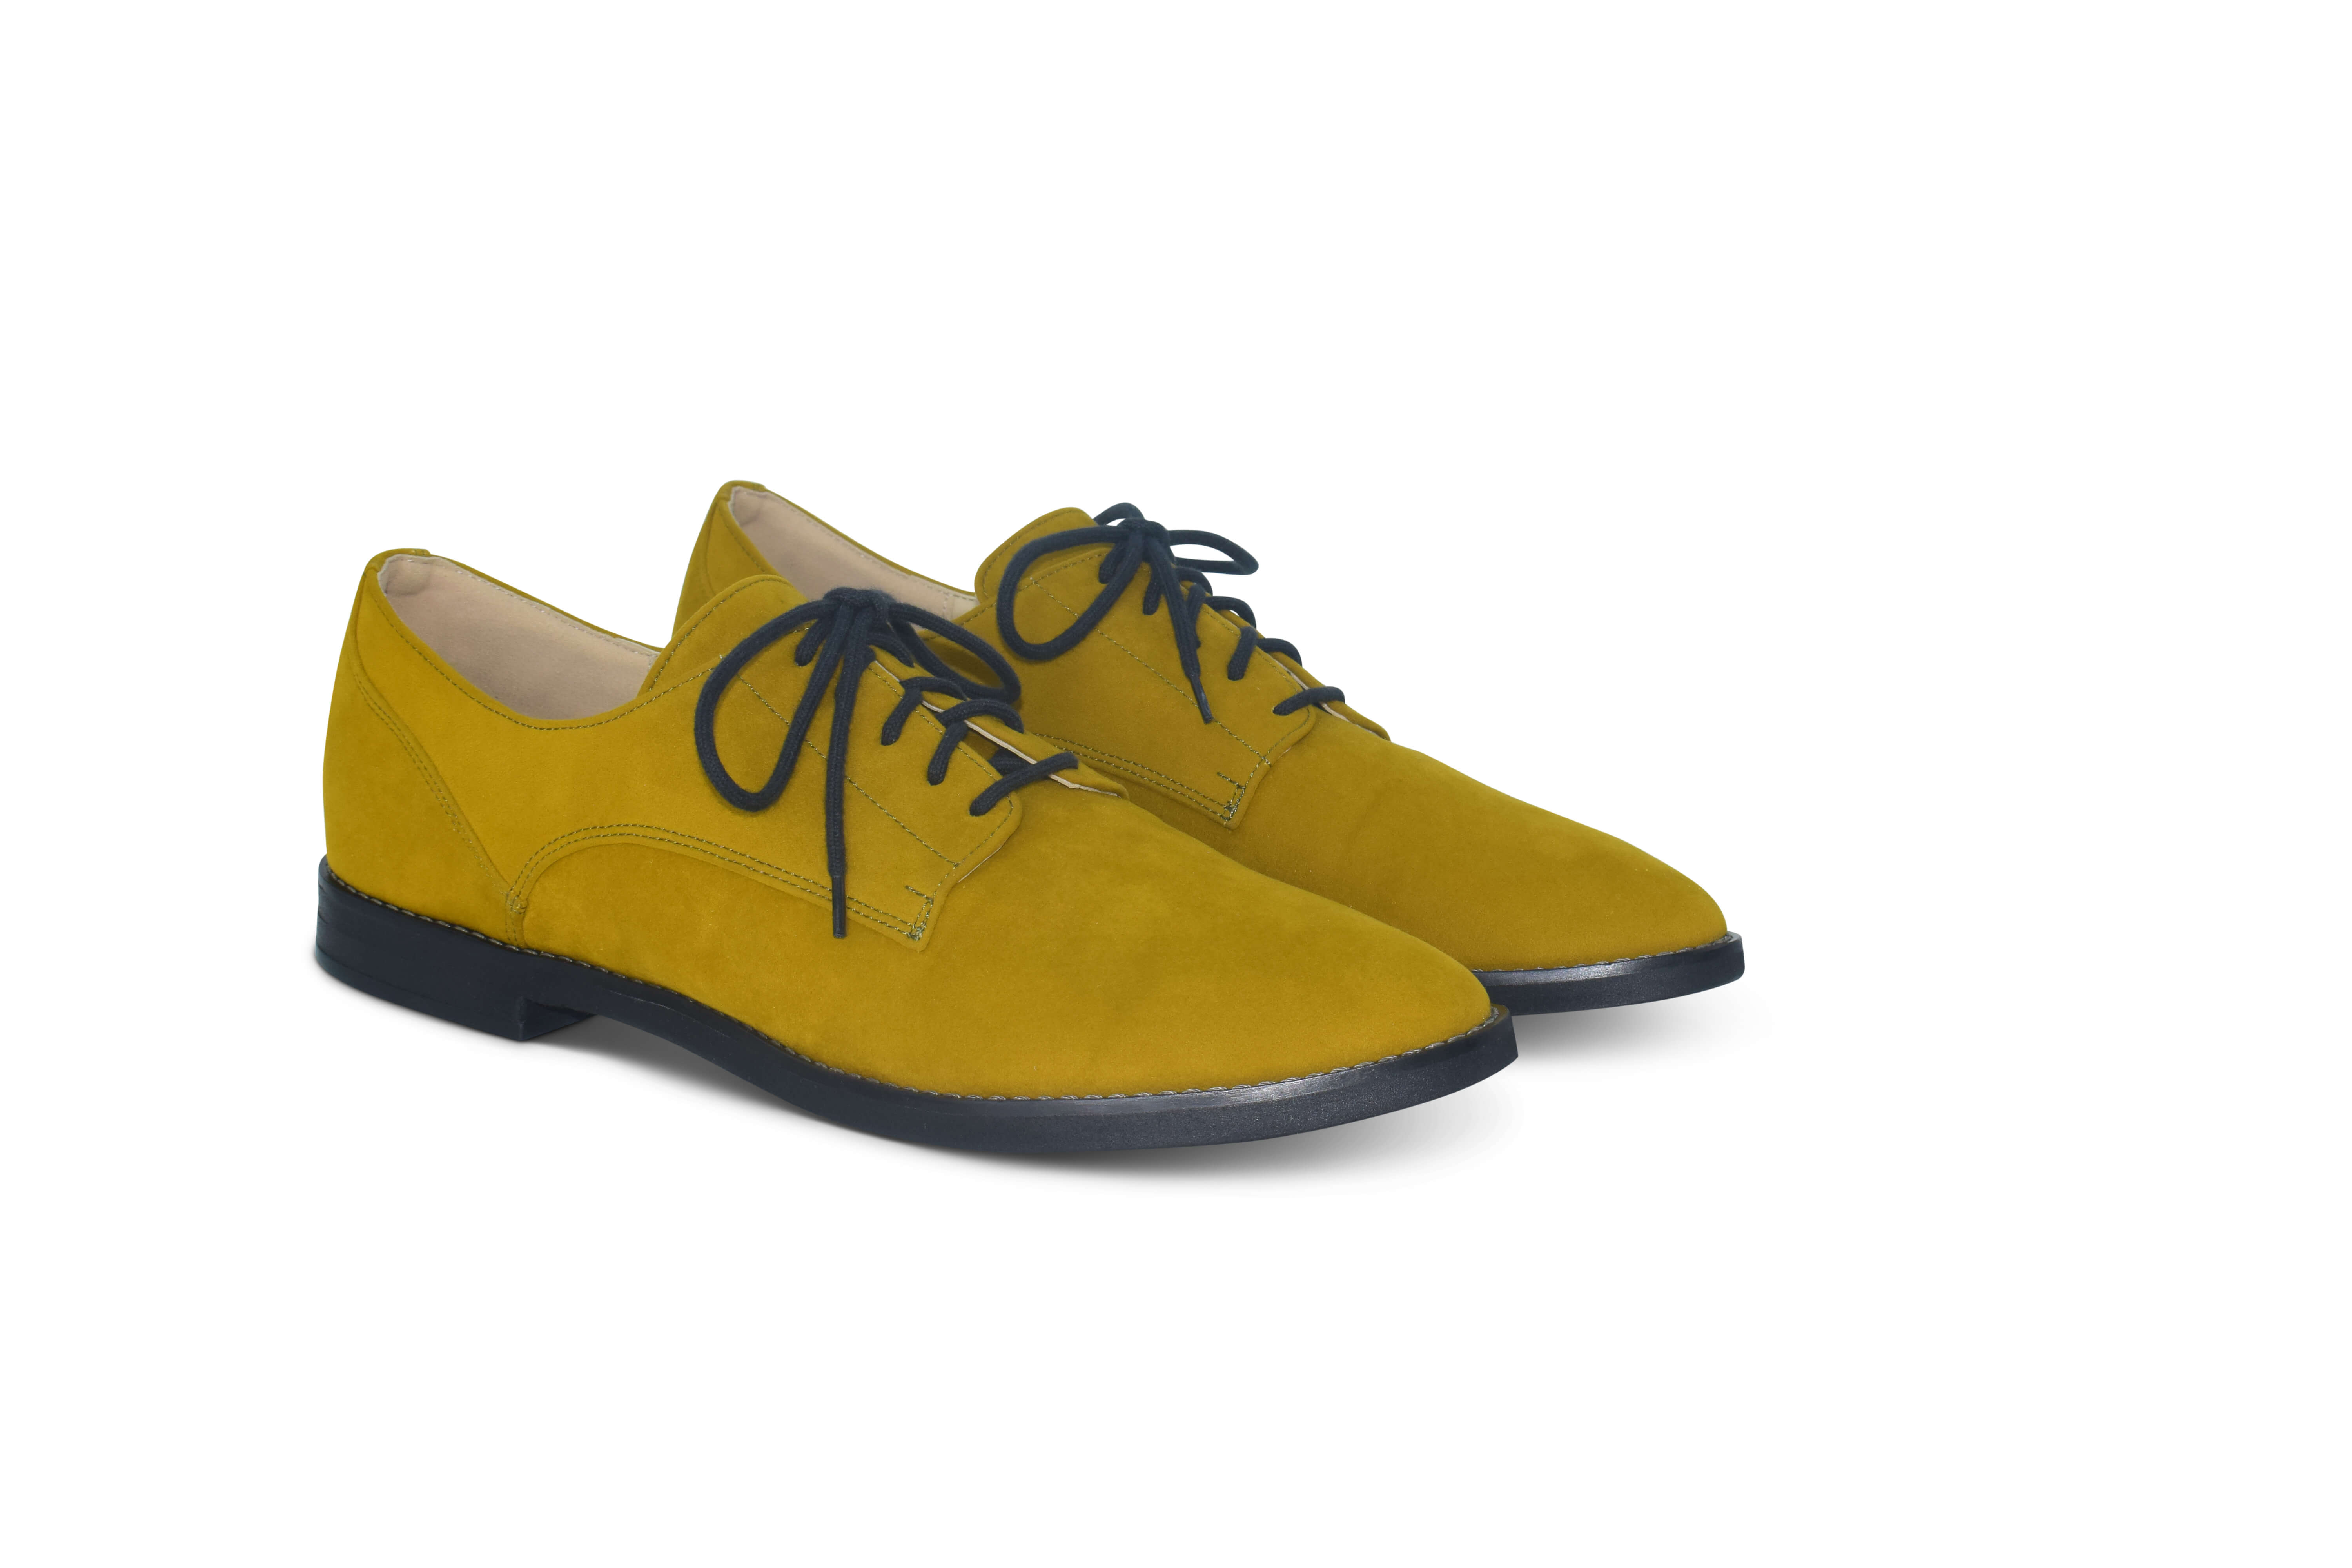 Harriett faux suede pointed toe Oxfords - mustard yellow